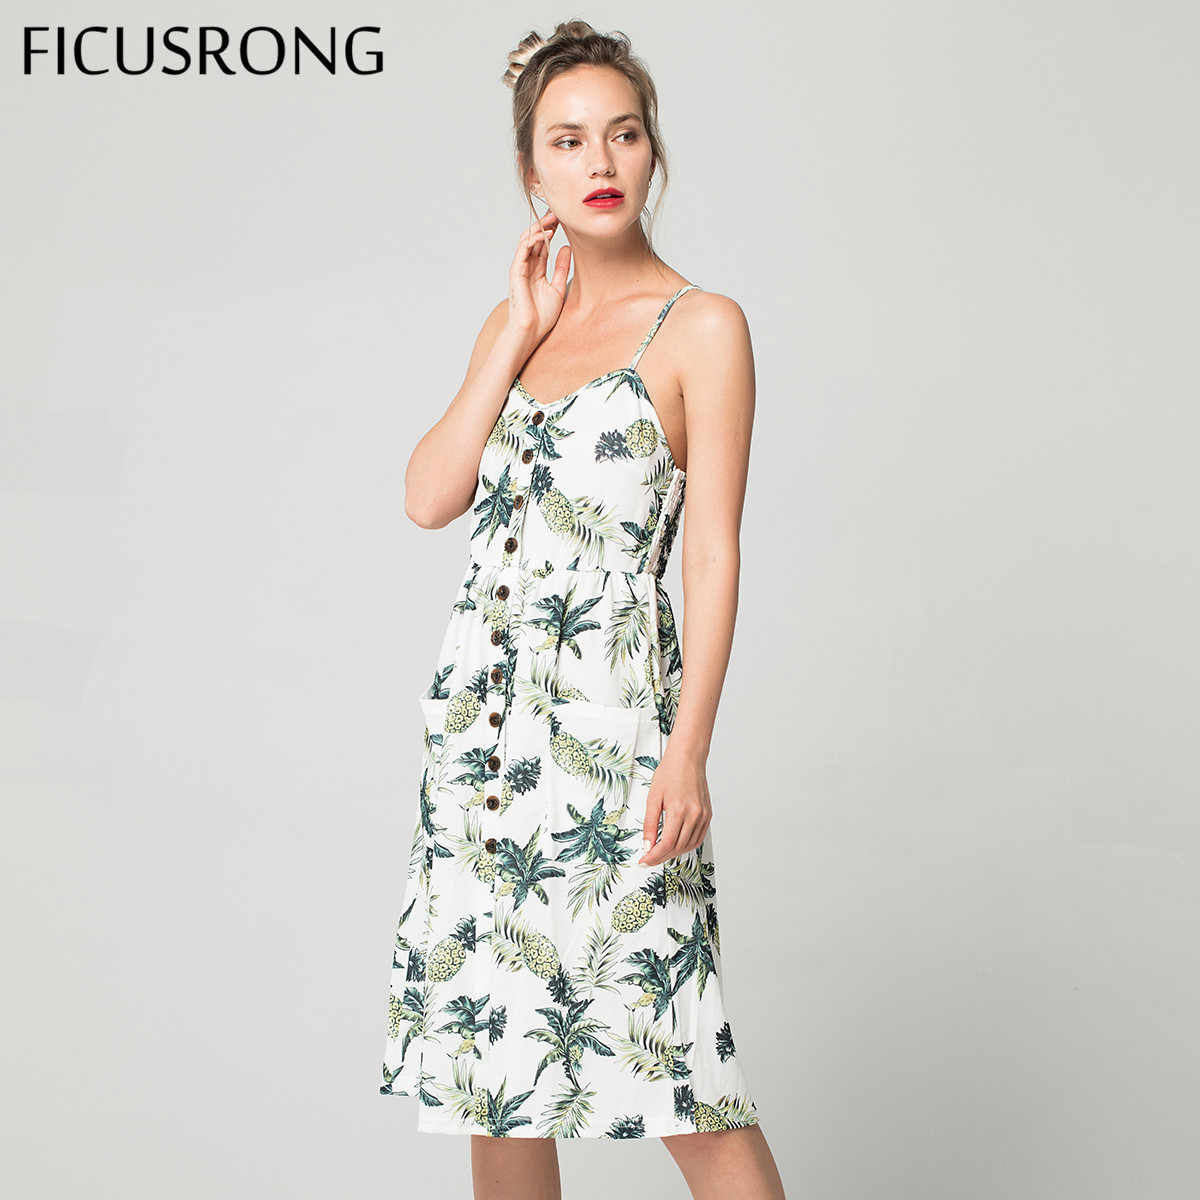 Summer Women Button Decorated Print Dress Off-shoulder Party Beach Sundress Boho Spaghetti Long Dresses Plus Size FICUSRONG